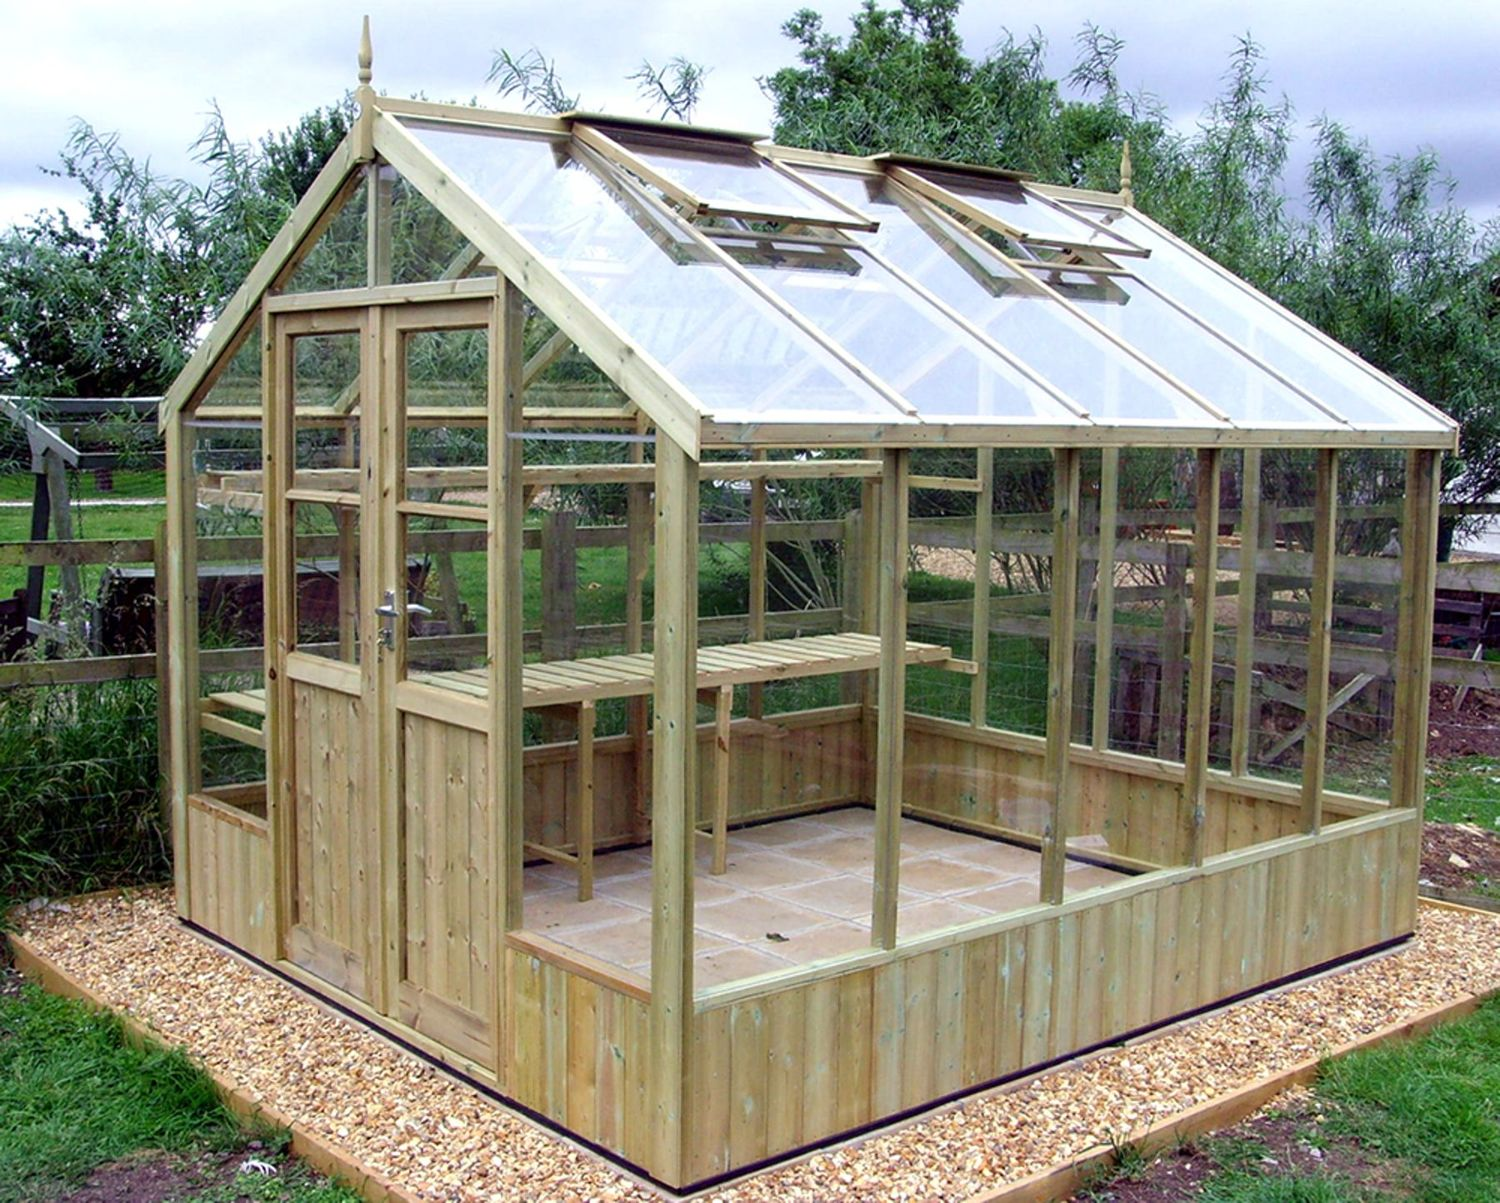 Lean To Shed Plans Free further pletely Free 108 Sq Ft Cottage Wood Cabin Plans as well Watch further Share also A She Shed For The Ladies. on leanto sheds